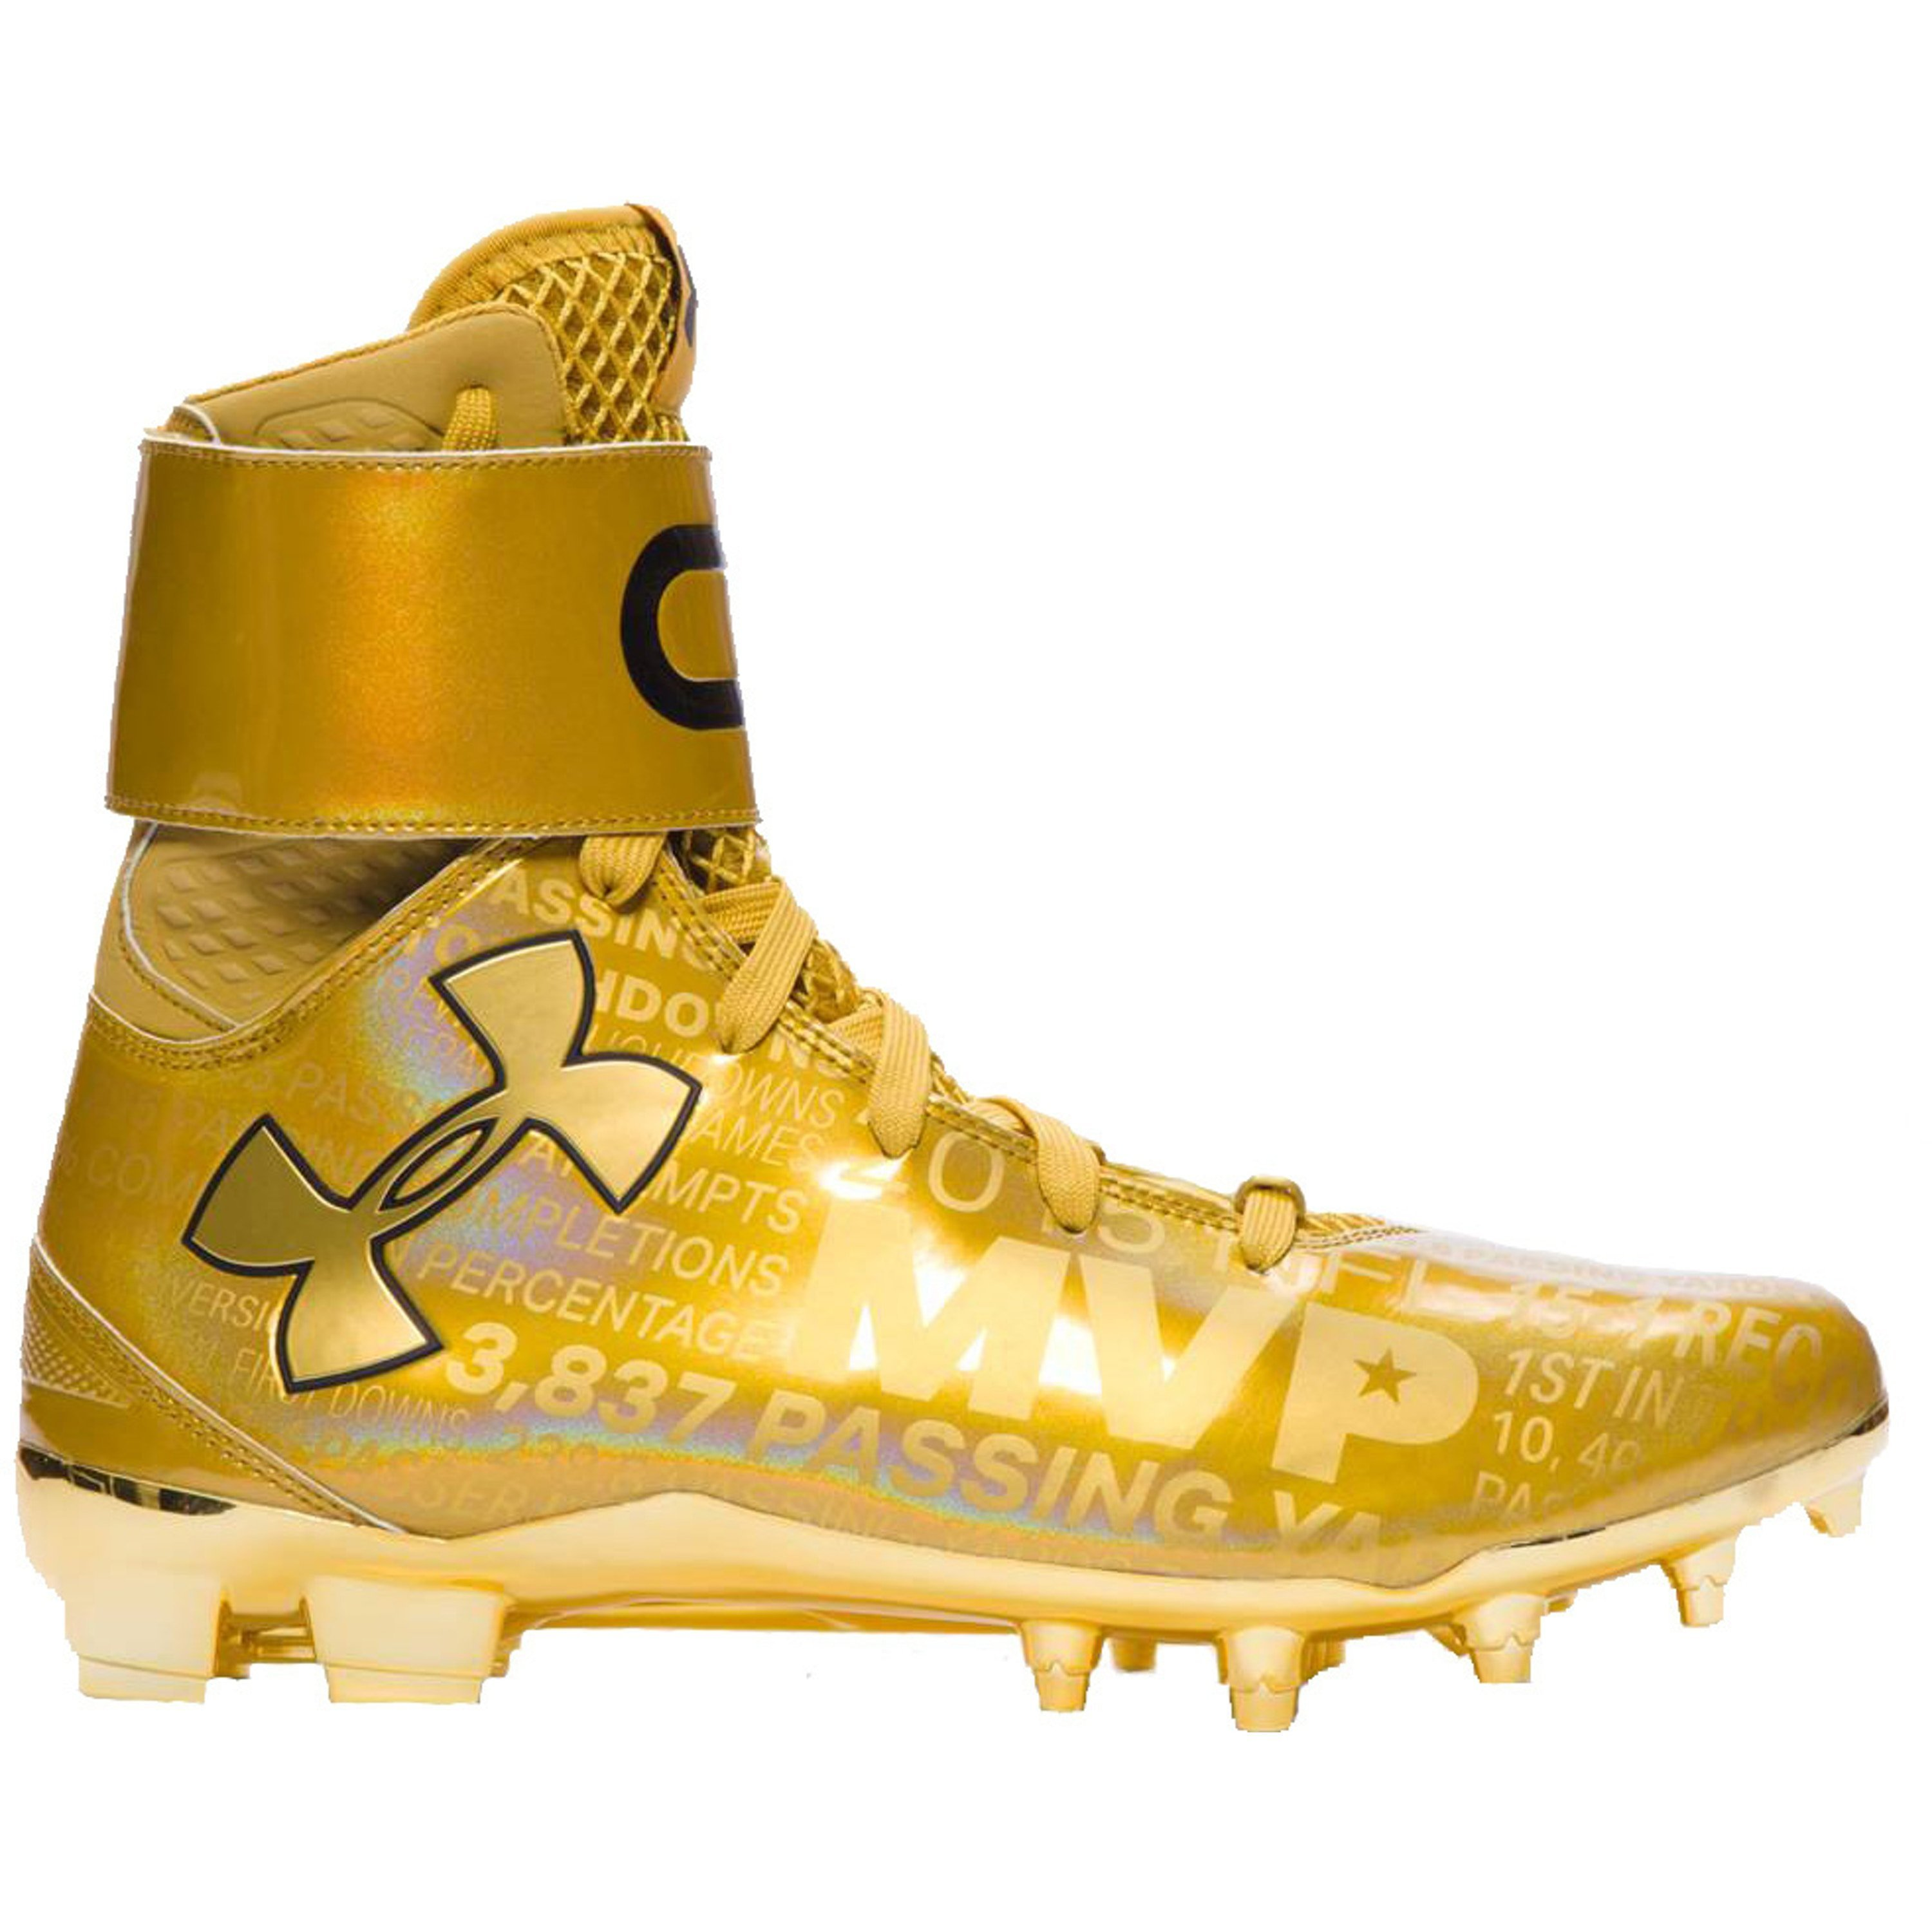 Under Armour UA C1N Cleats MVP (Unsigned) (1297139-795)